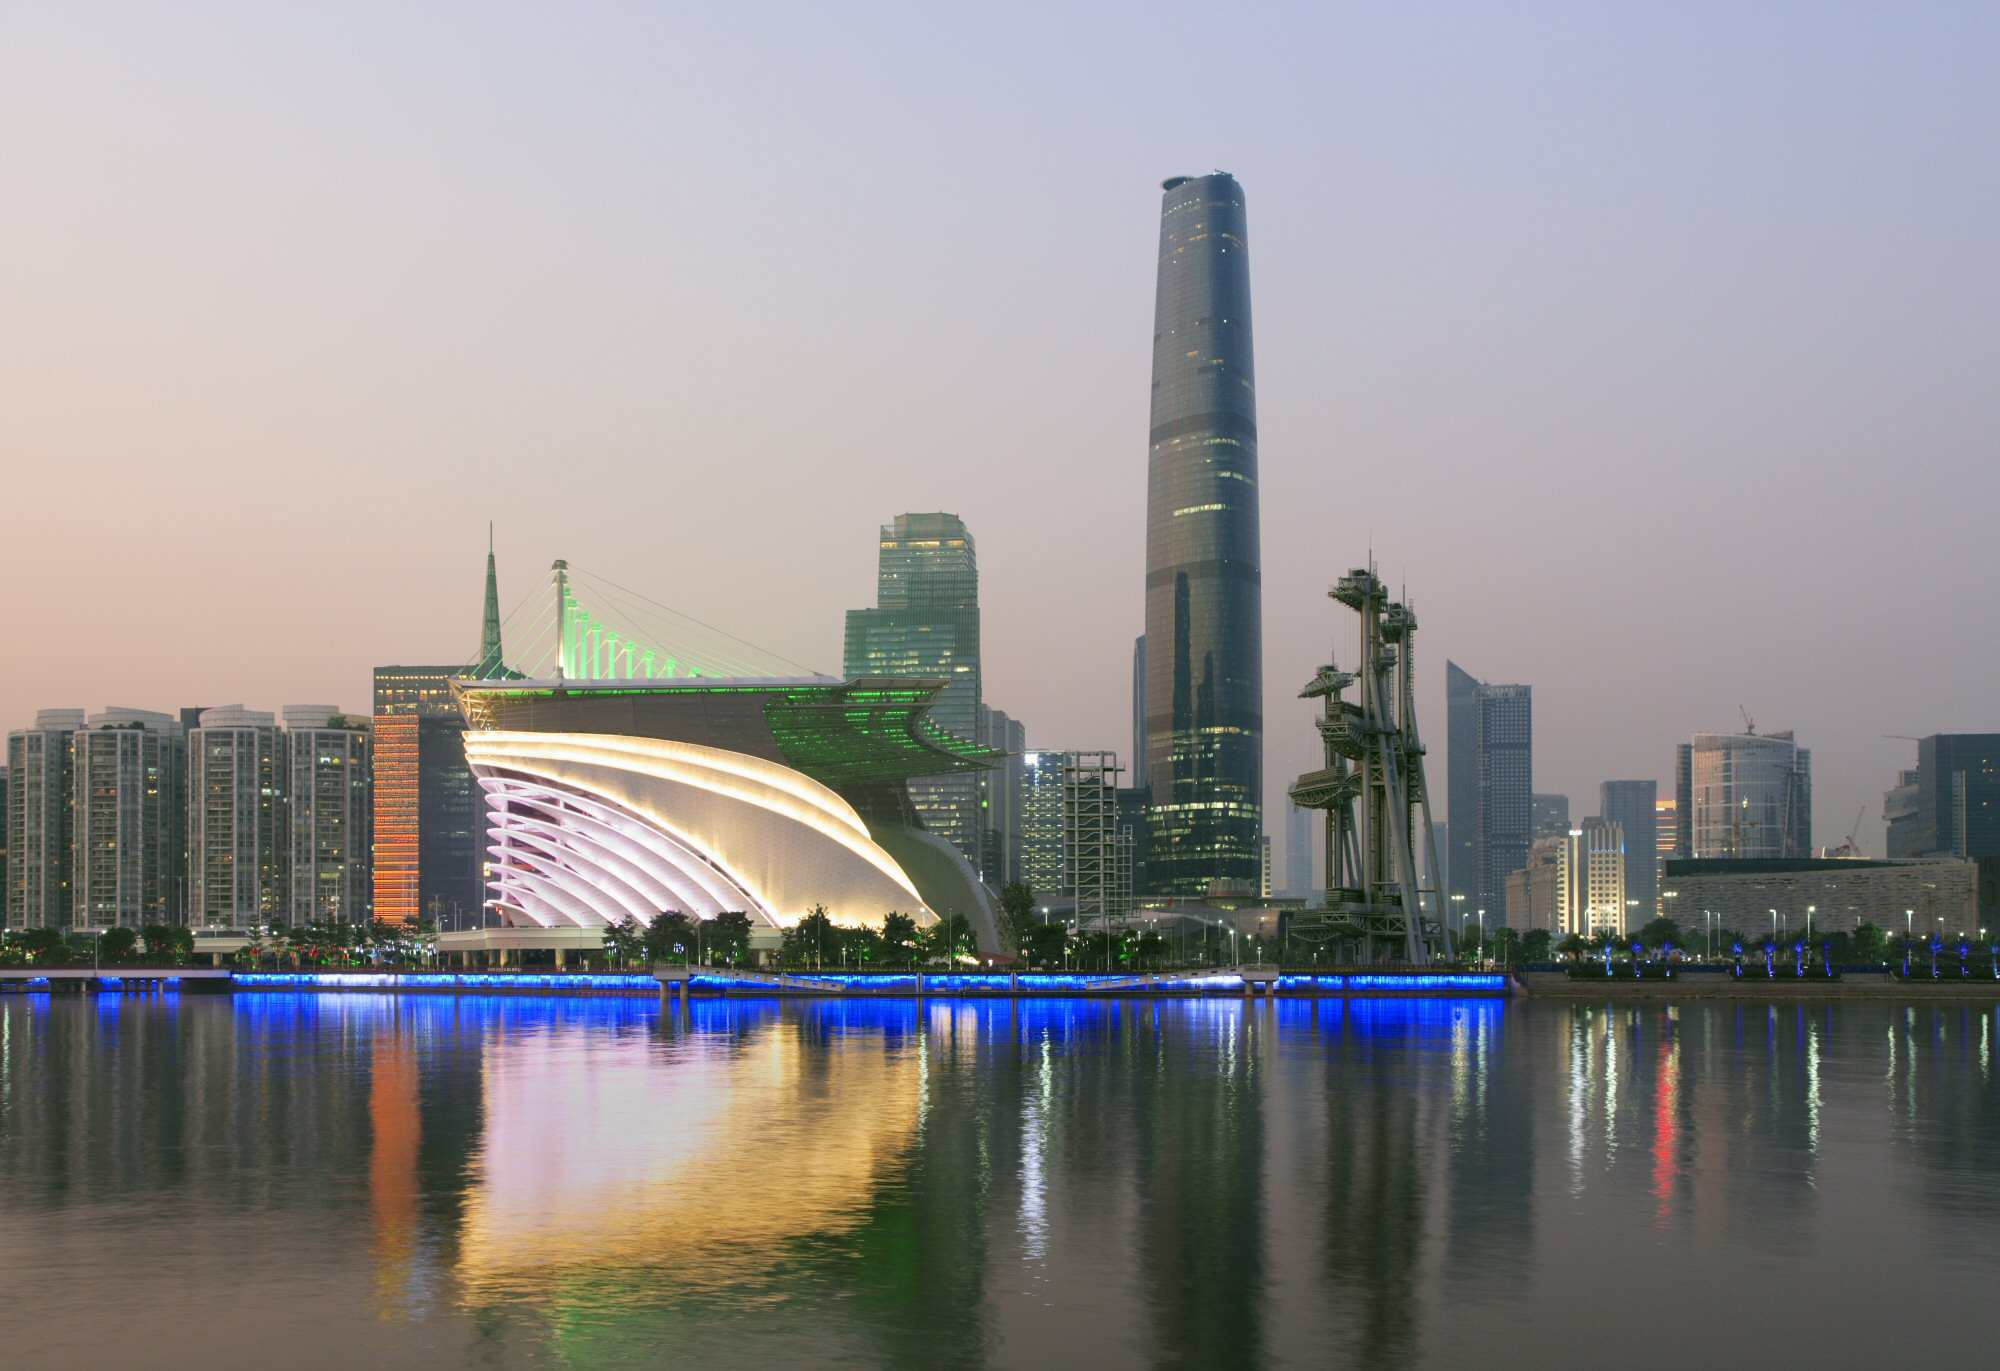 Skyline of Canton, China at dusk, with modern opera house reflecting in river